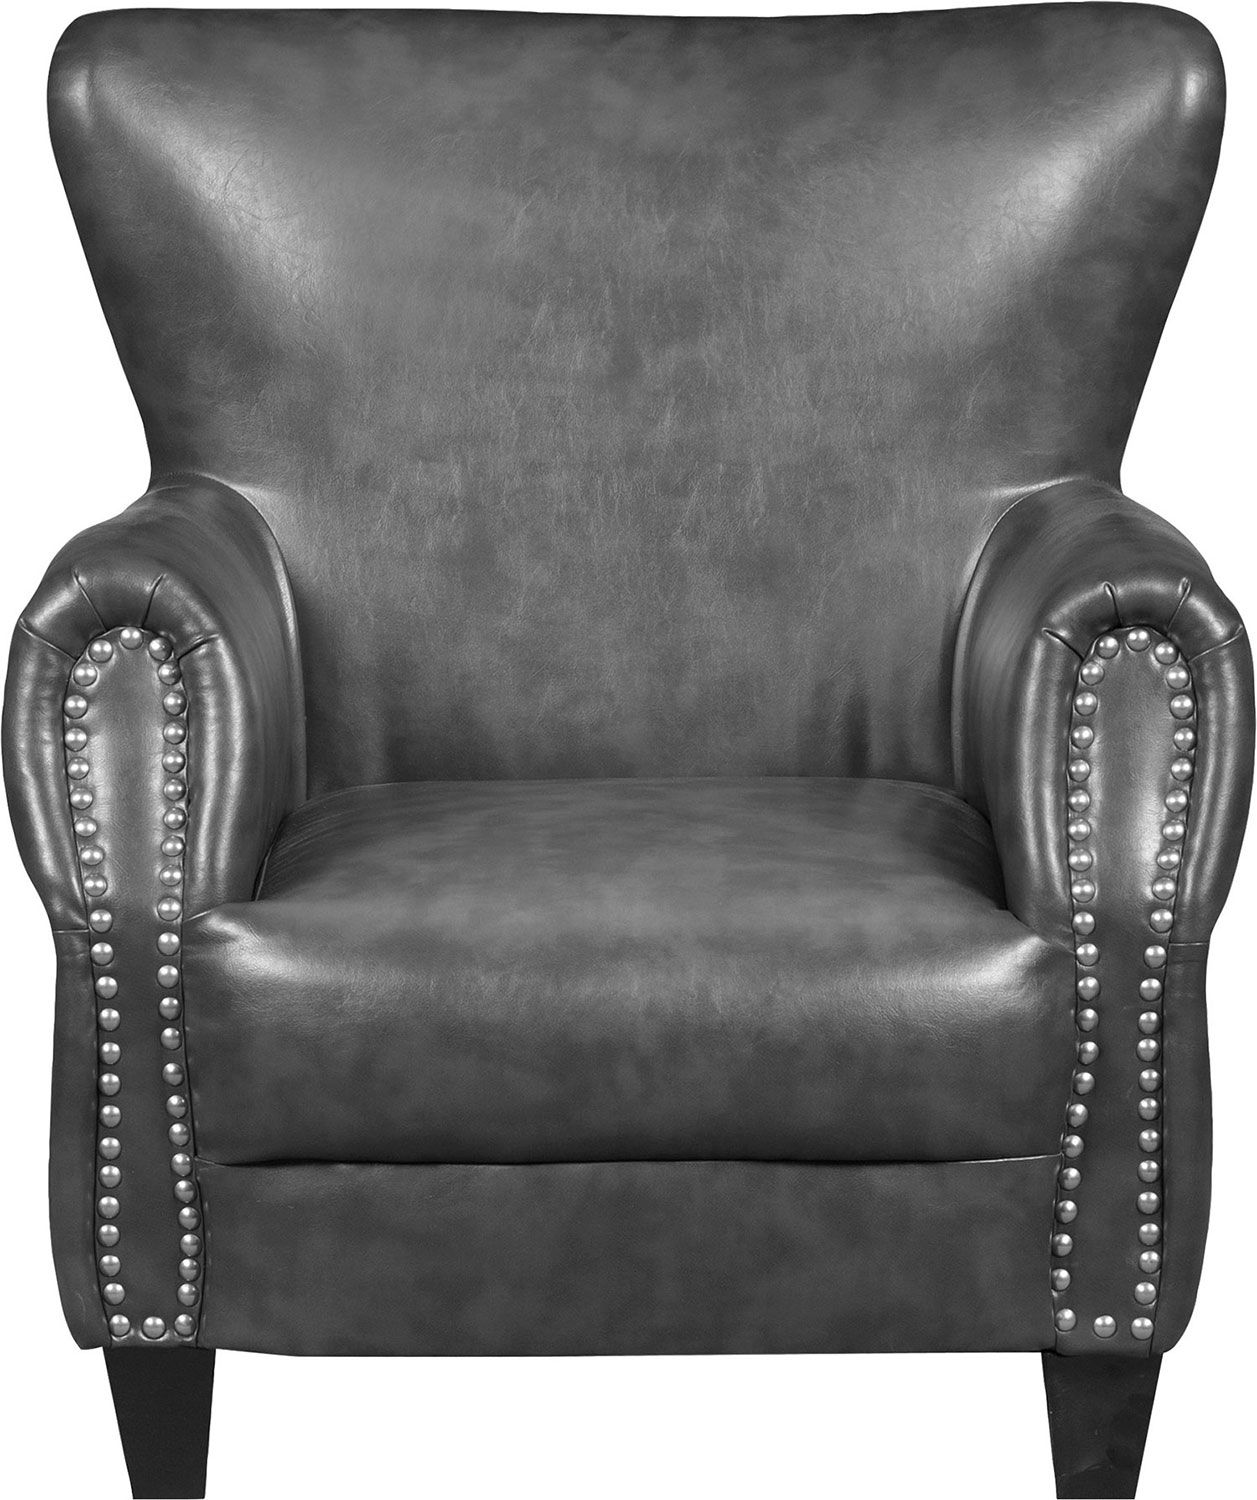 Flint Bonded Leather Accent Chair